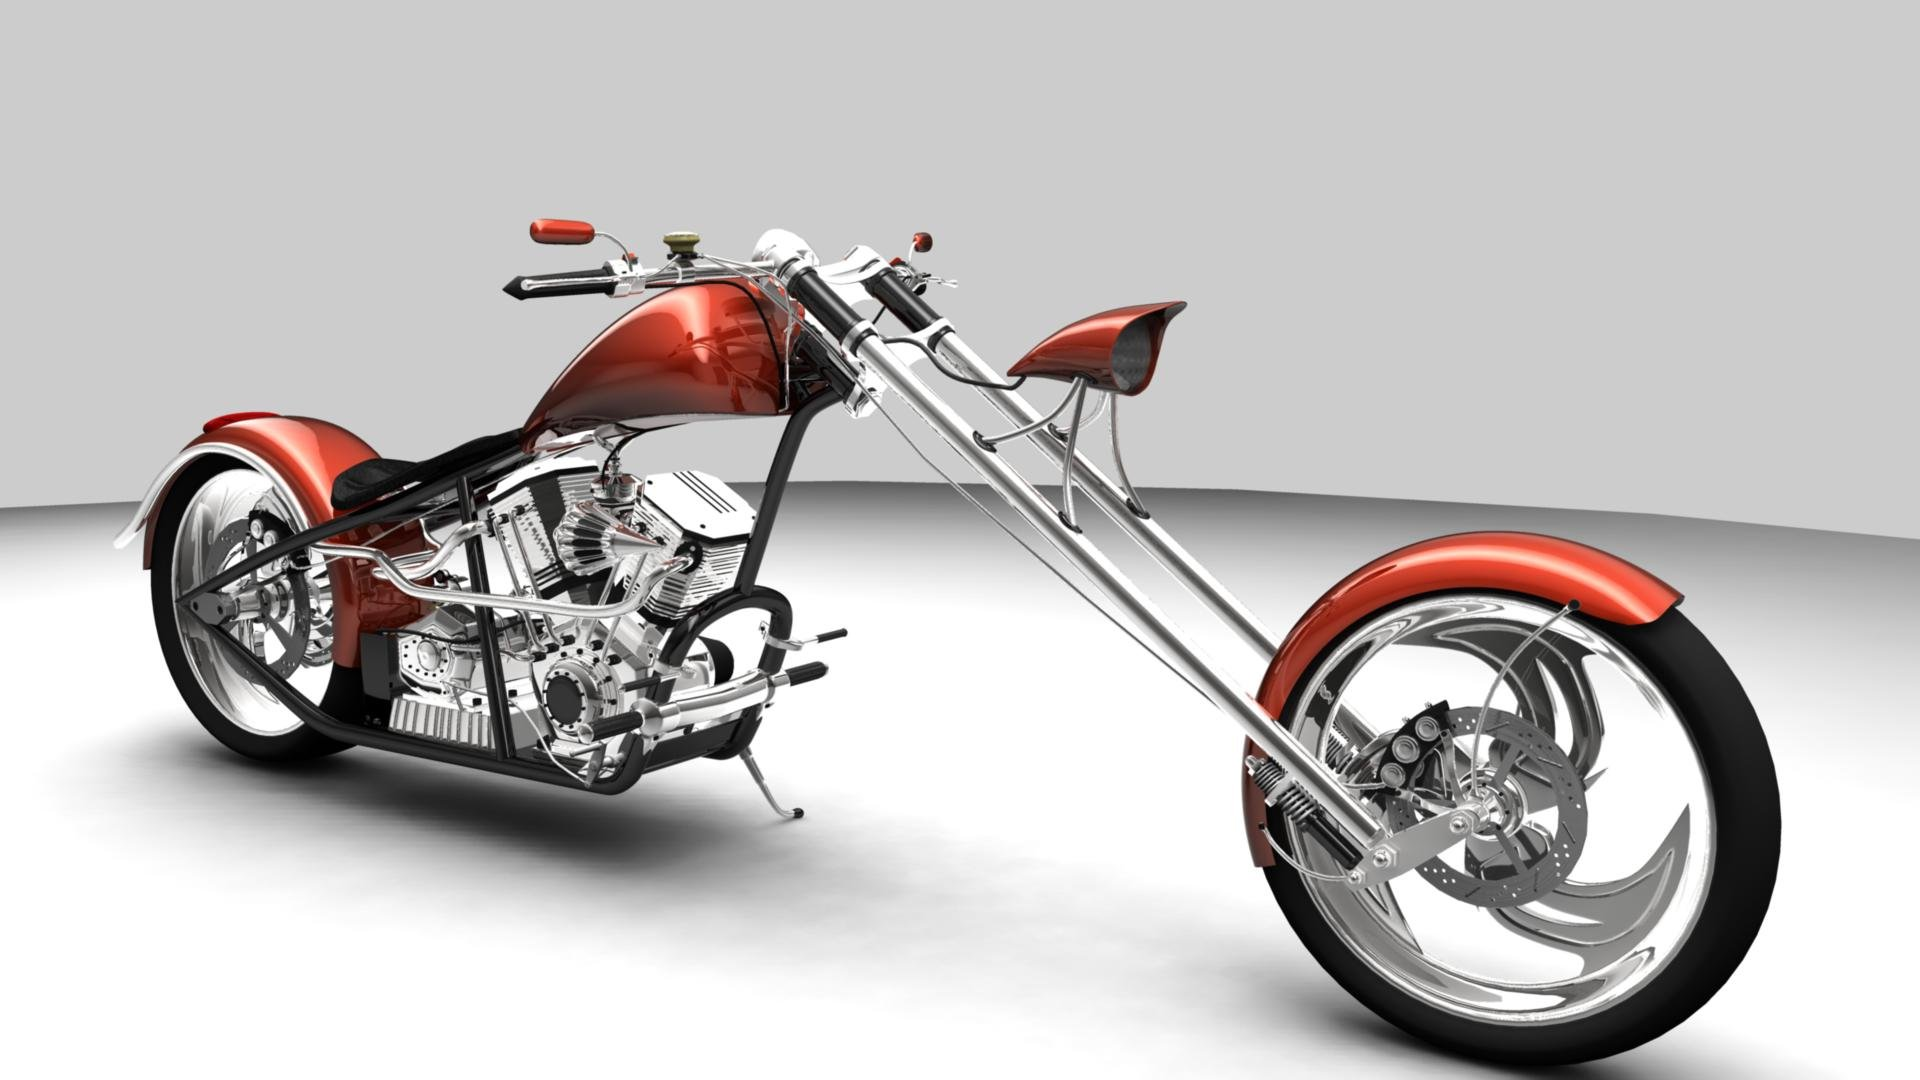 ORANGE COUNTY CHOPPERS occ custom chopper hot rod rods 1920x1080